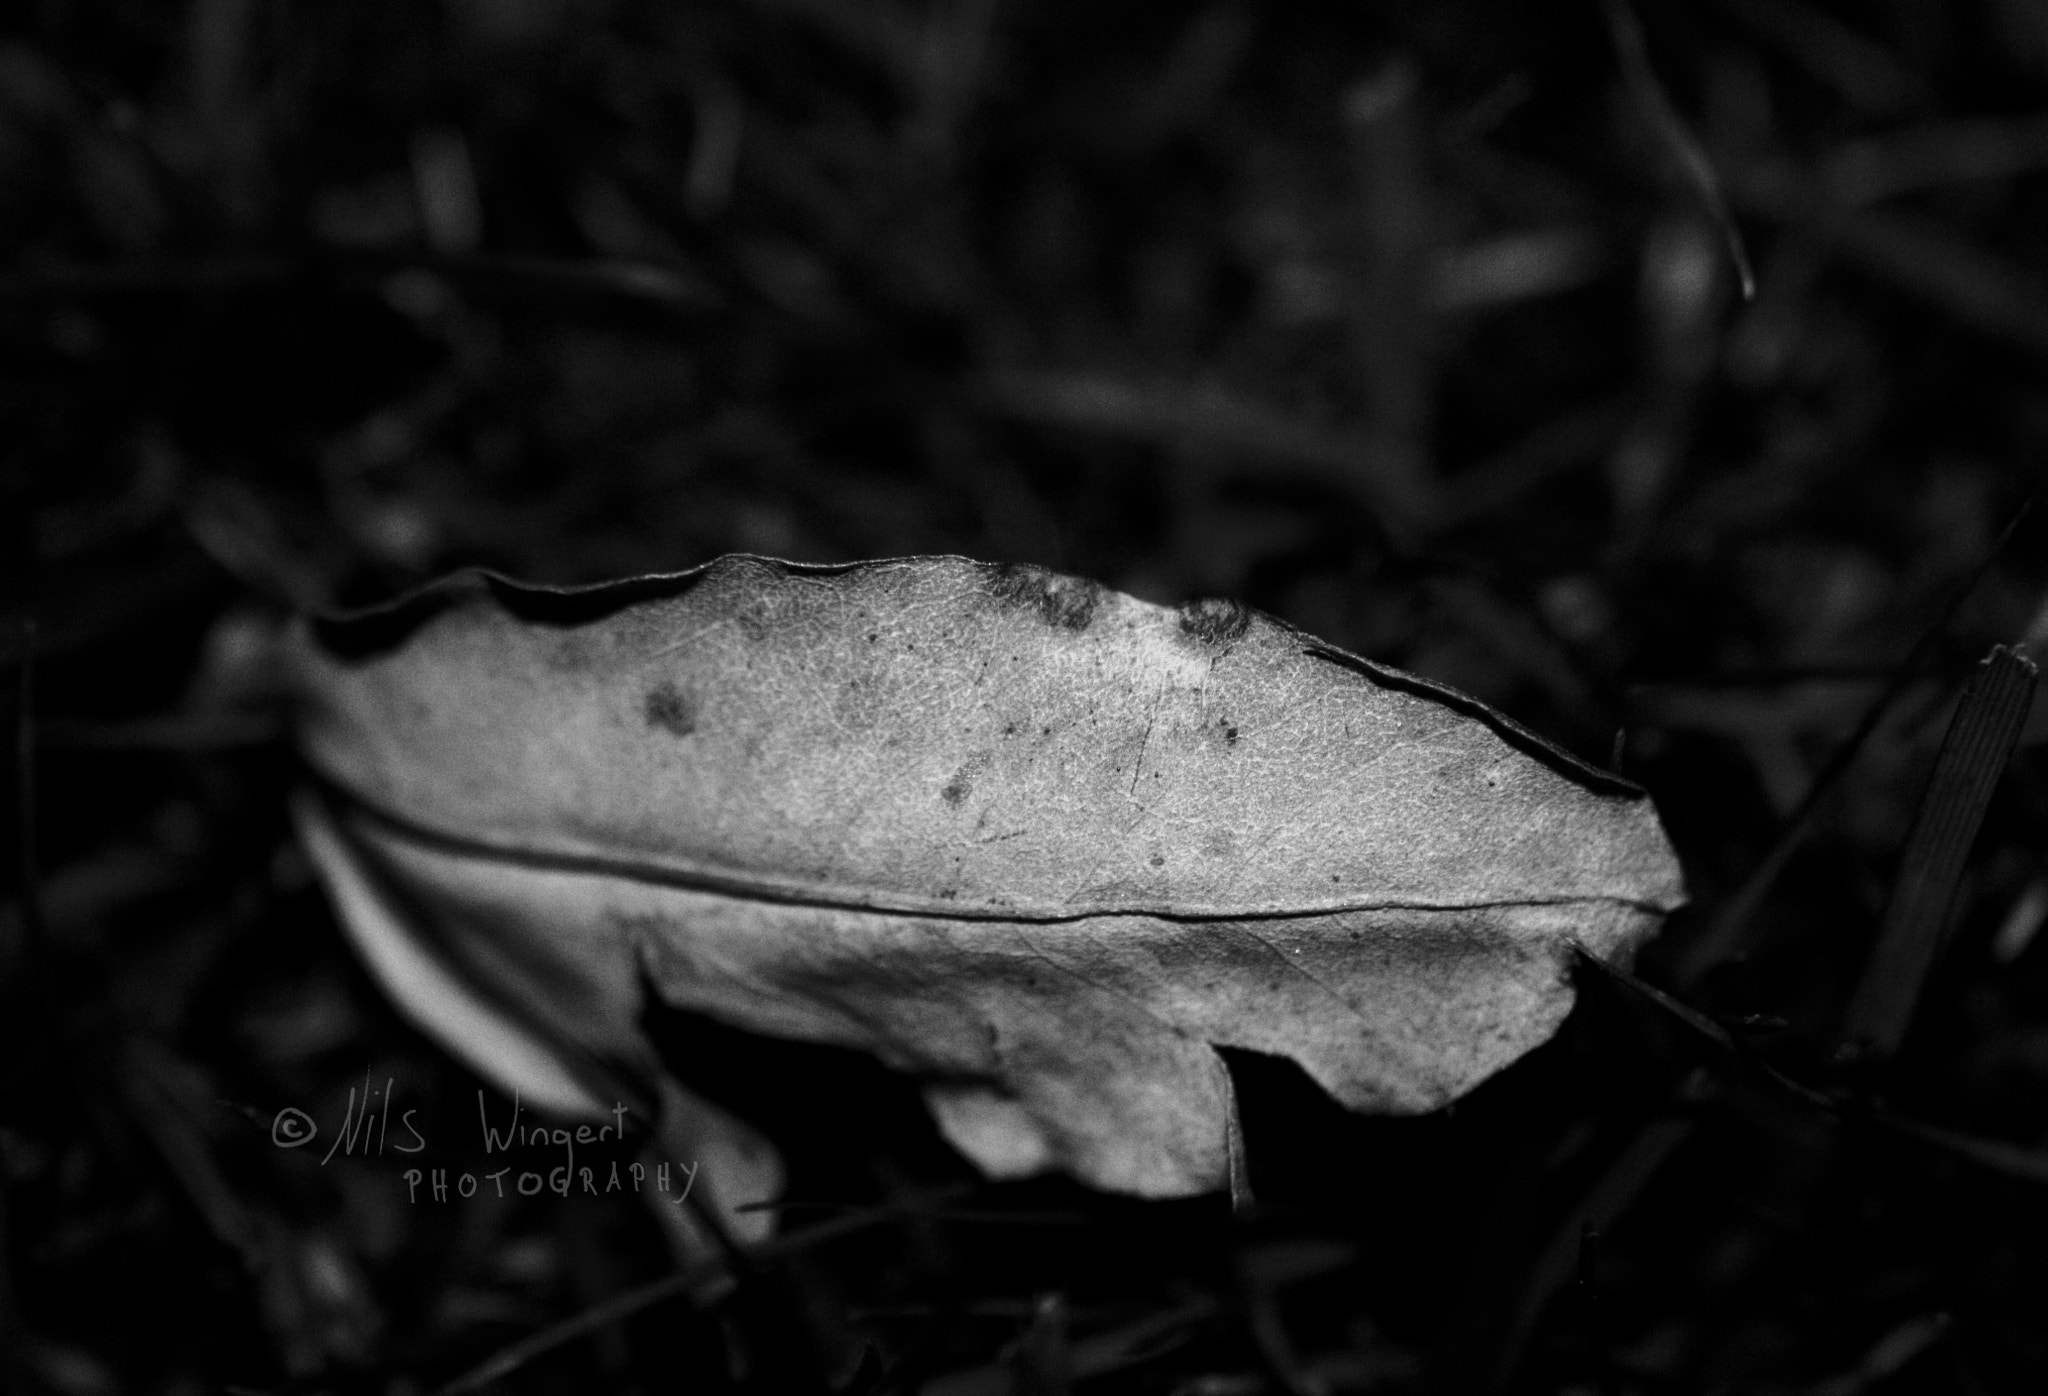 Photograph fallen leaf by Nils Wingert on 500px